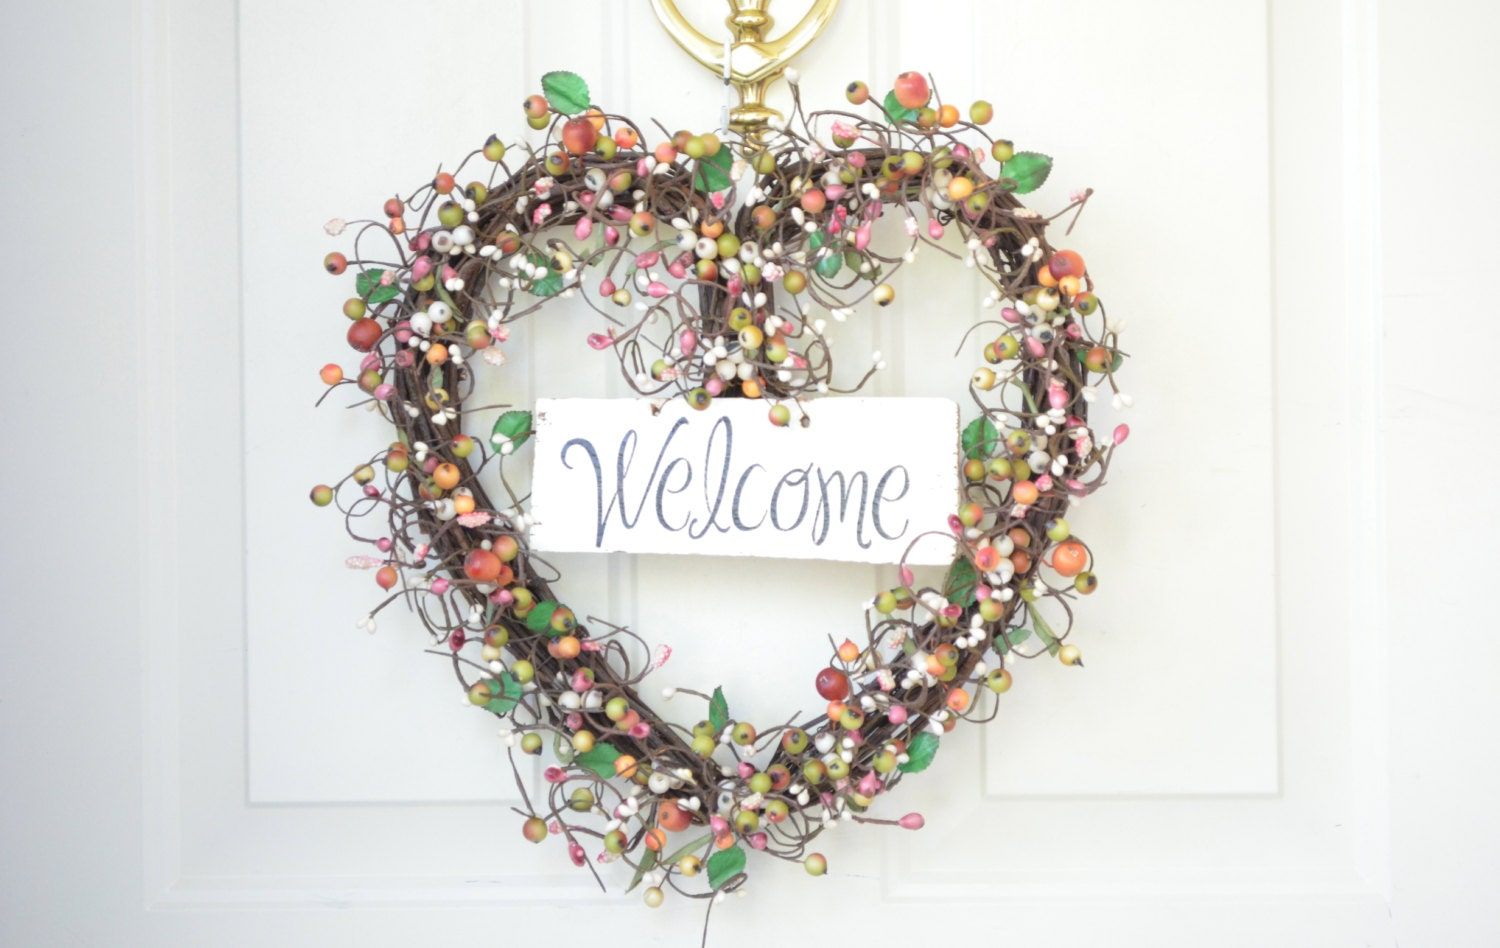 Welcome wreath heart shaped wreath by laurelsbylaurie on etsy